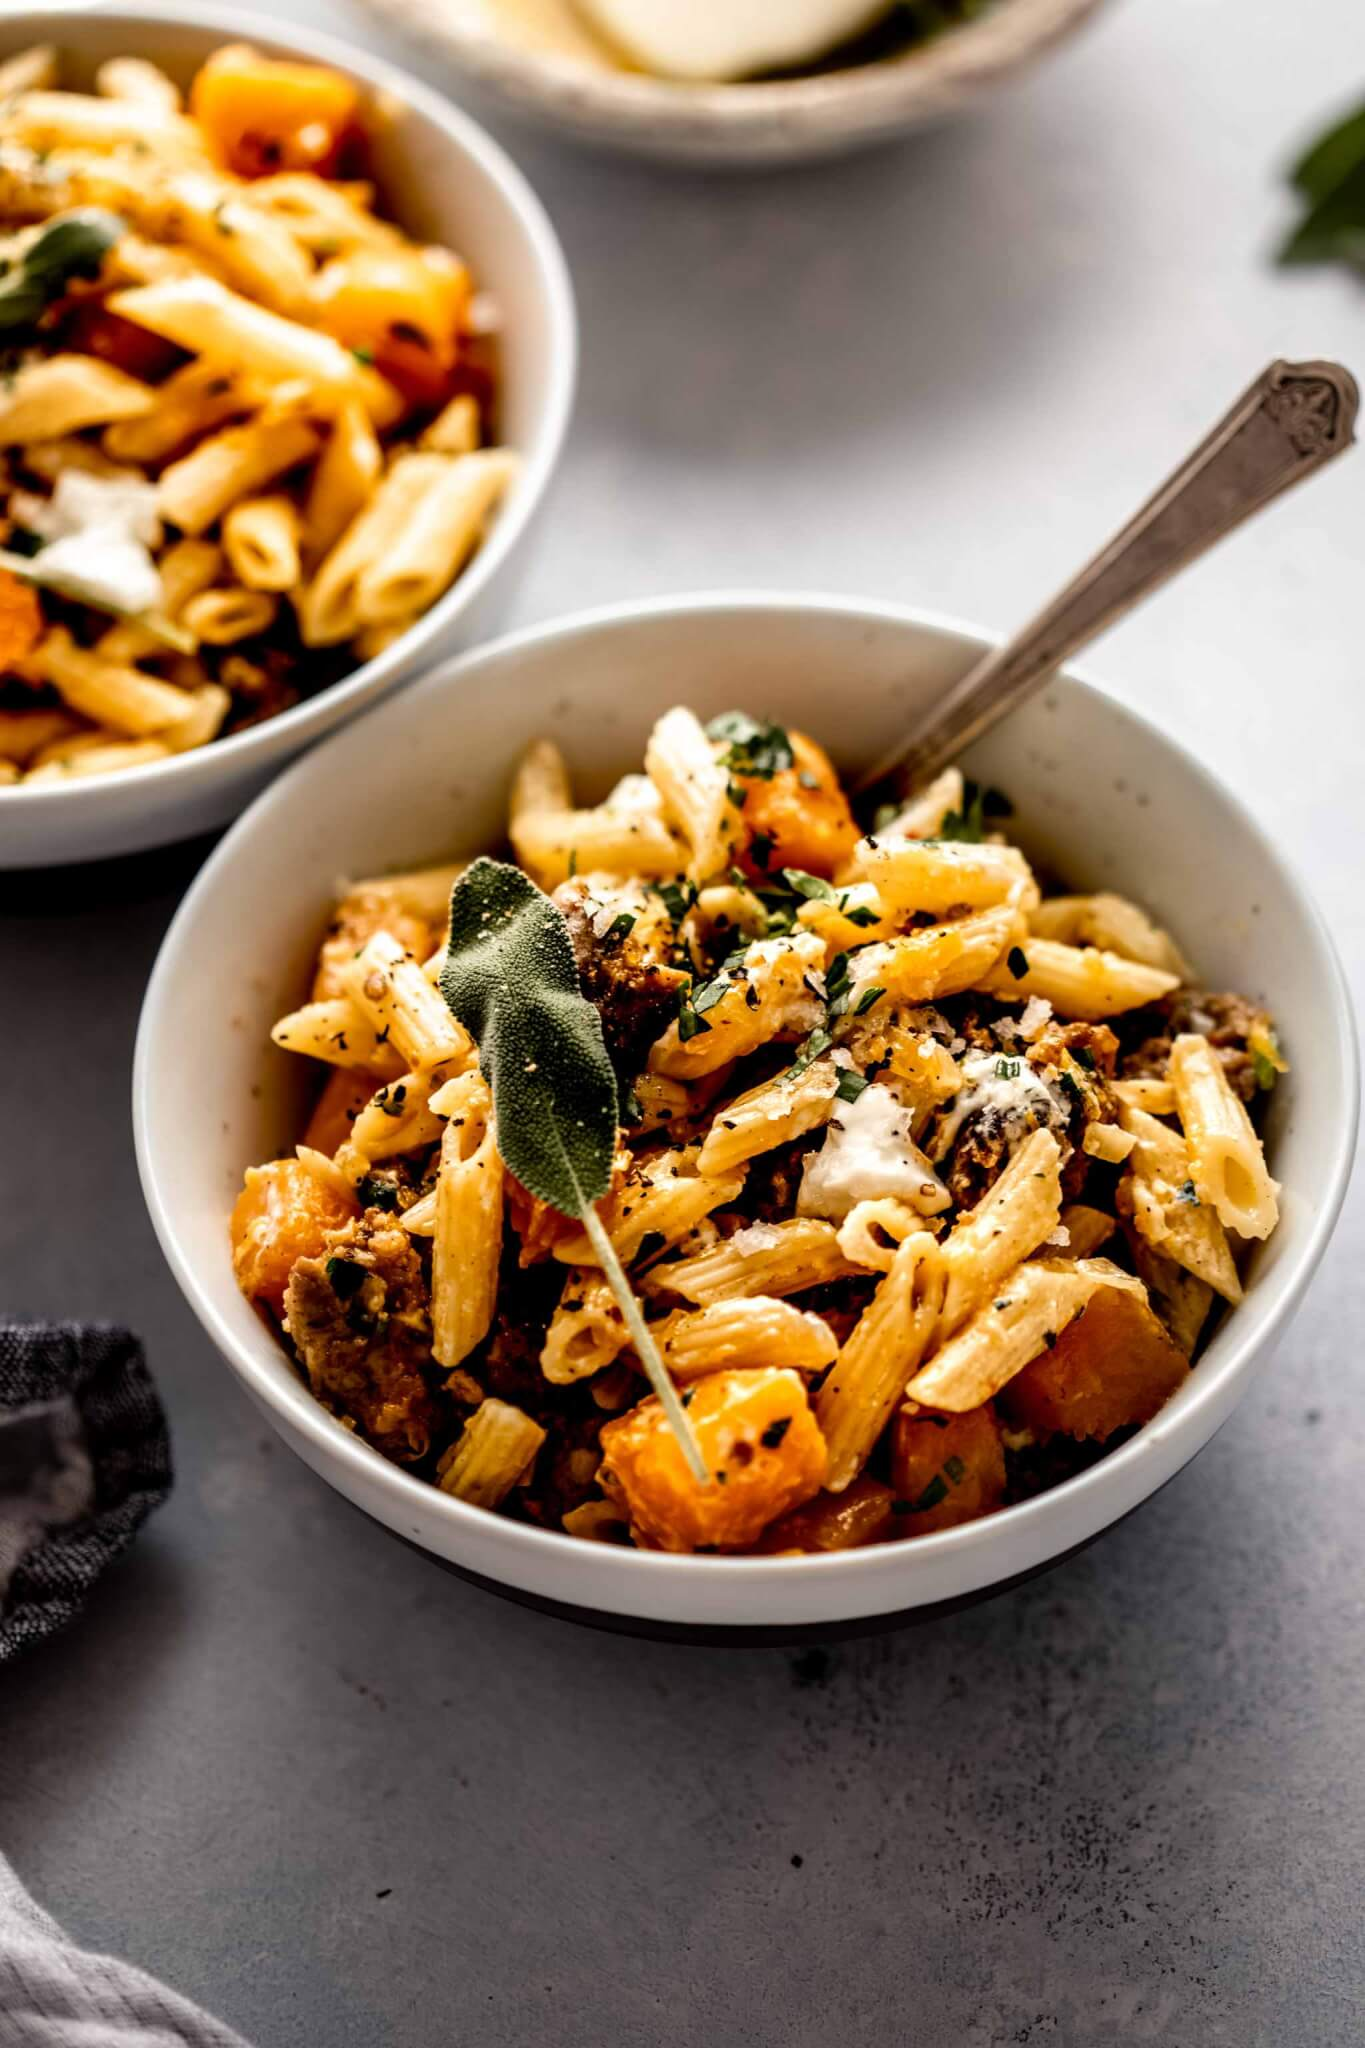 Two bowls of butternut squash pasta topped with sage leaves and goat cheese.